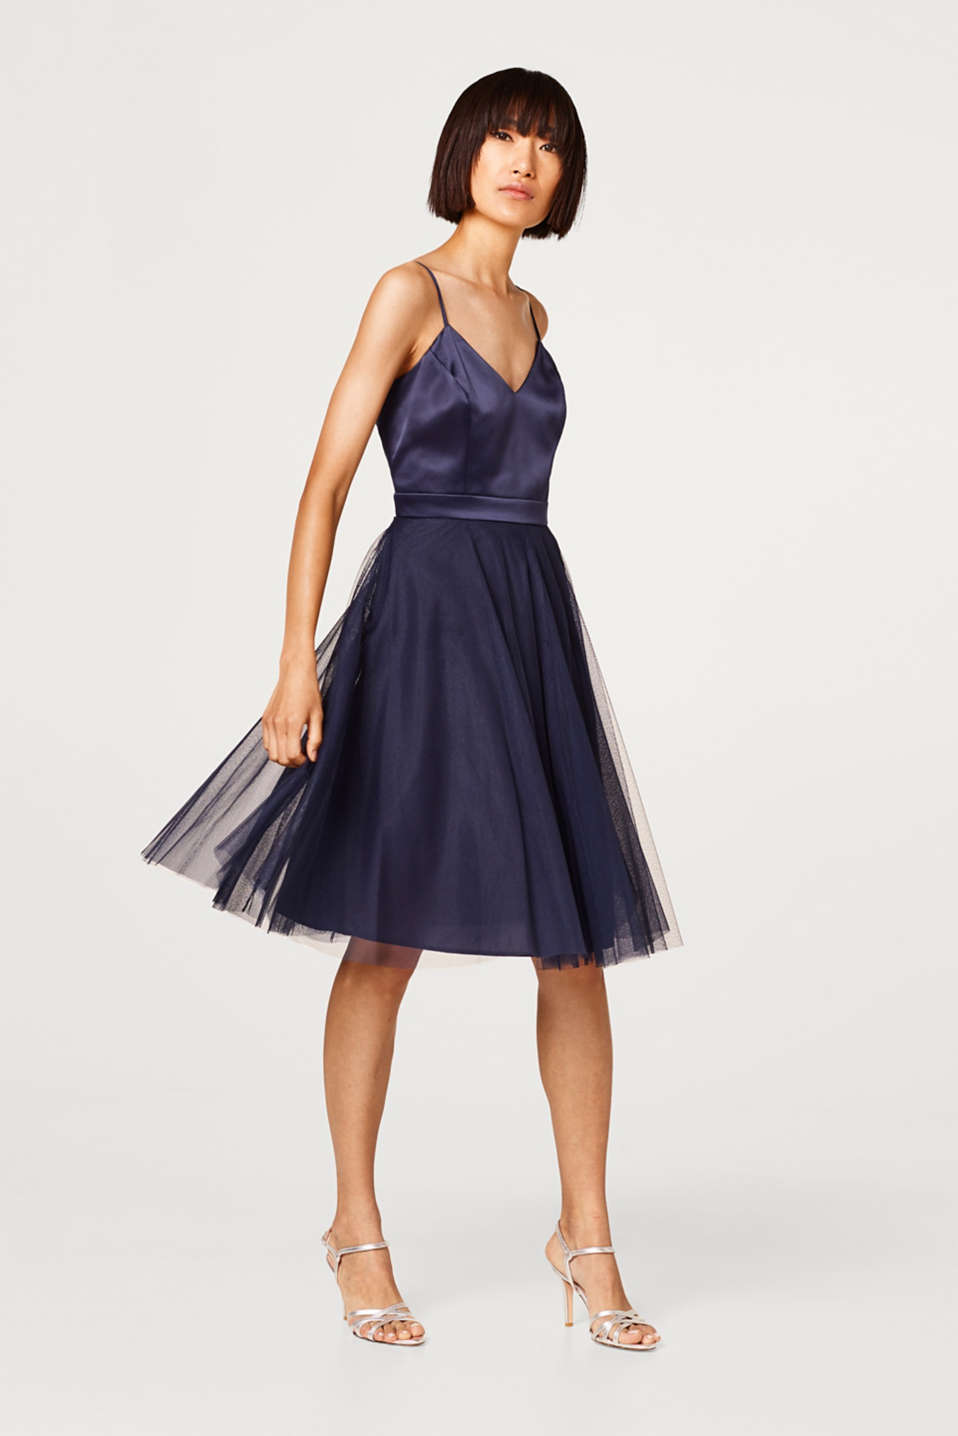 2-In-1 dress with a tulle skirt and a satin top